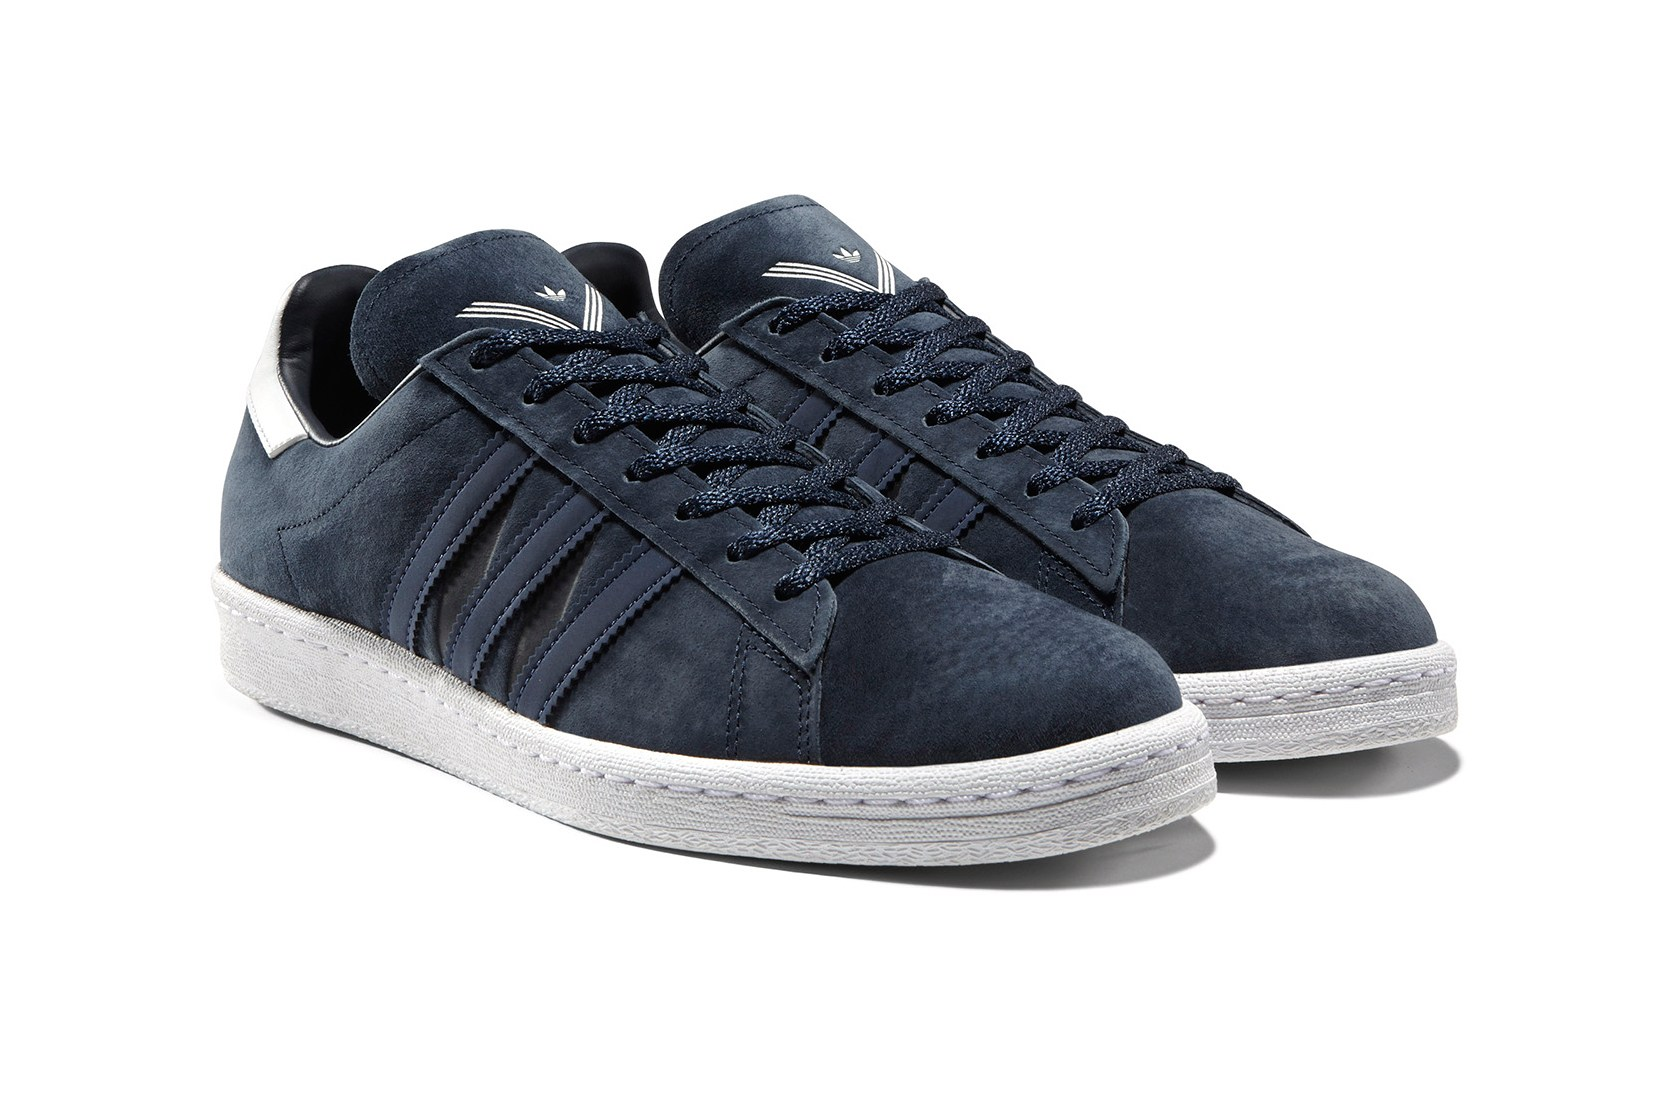 White Mountaineering x Adidas Spring Collection 2